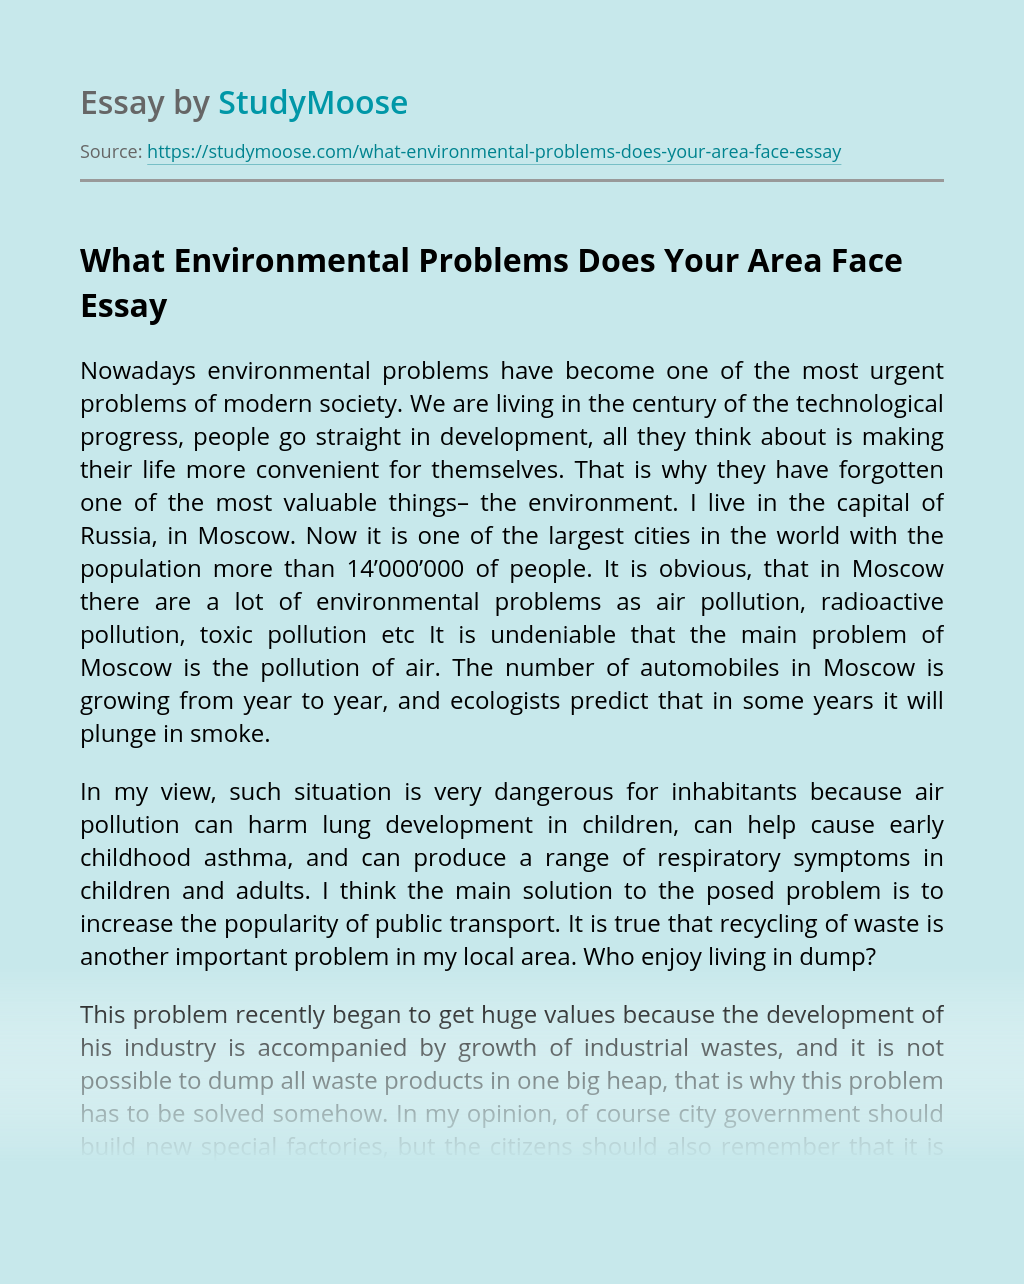 What Environmental Problems Does Your Area Face